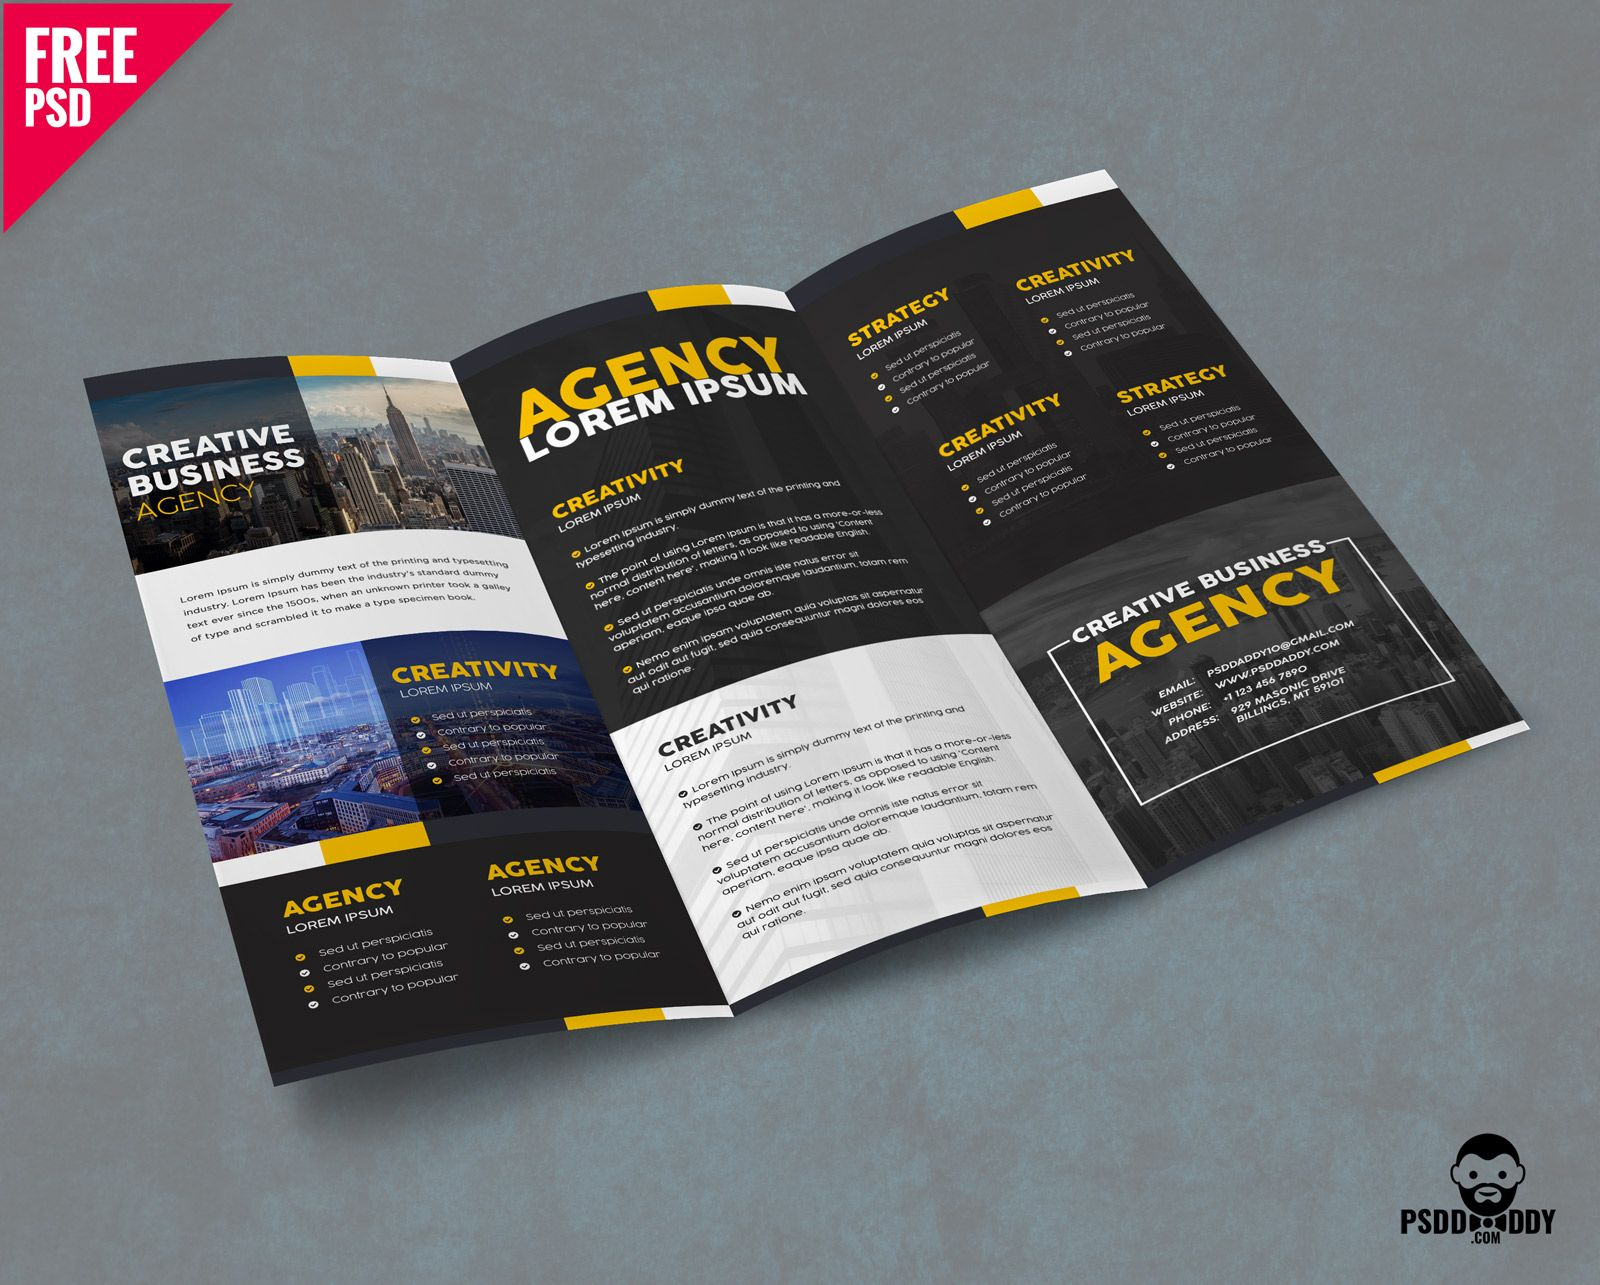 Corporate Trifold Brochure Template Free PSD UXFreeCOM DESIGN - 3 fold brochure template free